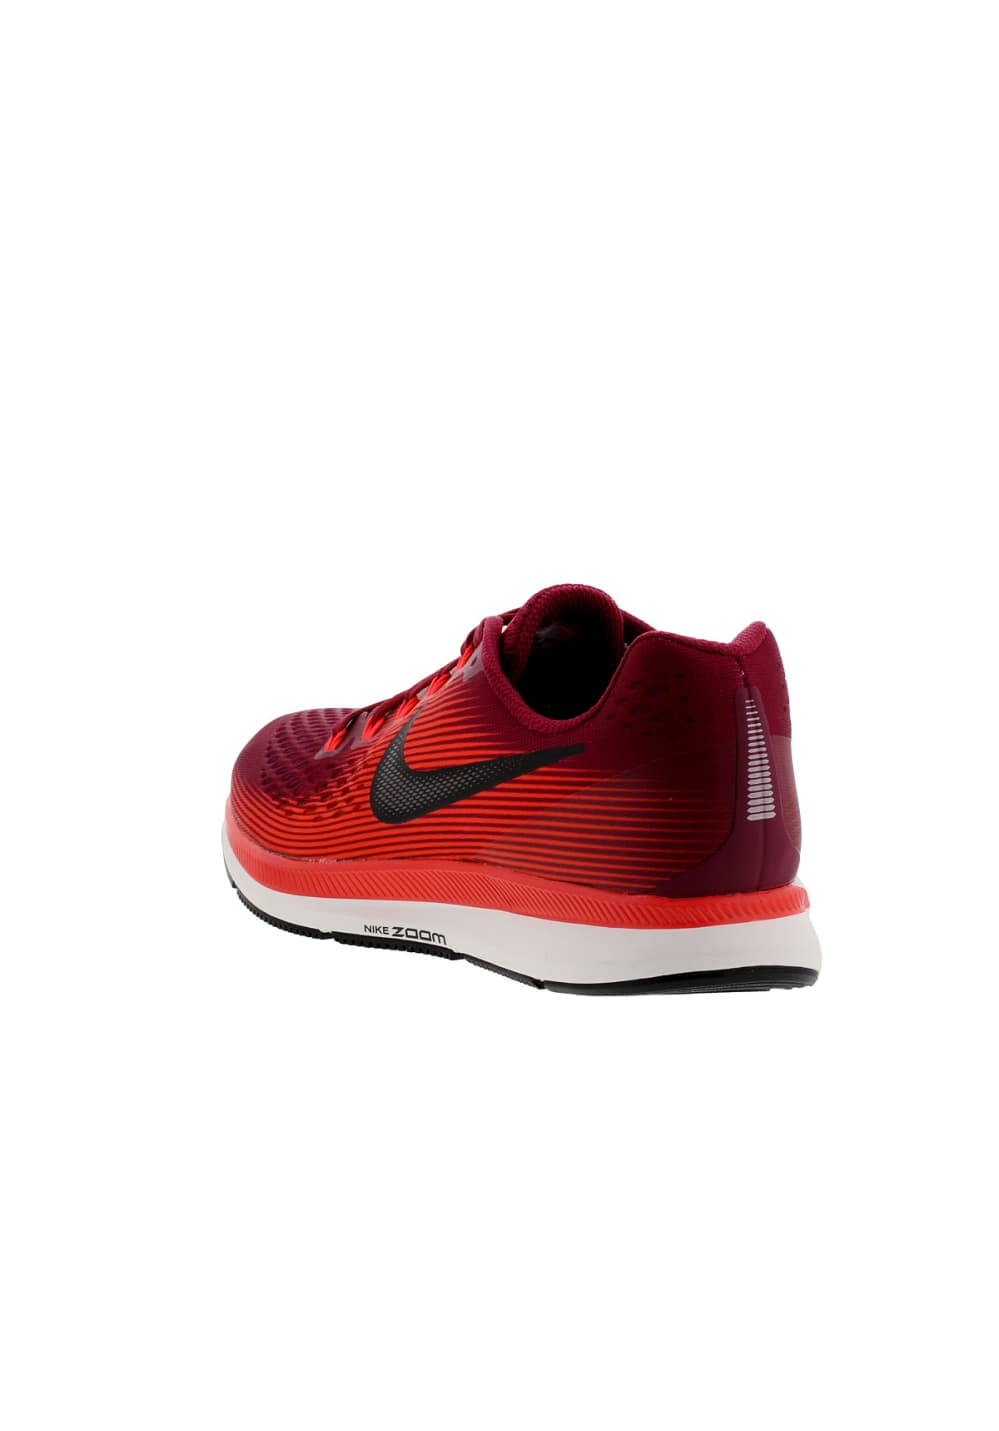 super populaire 9d940 67ae4 Nike Air Zoom Pegasus 34 - Running shoes for Men - Red